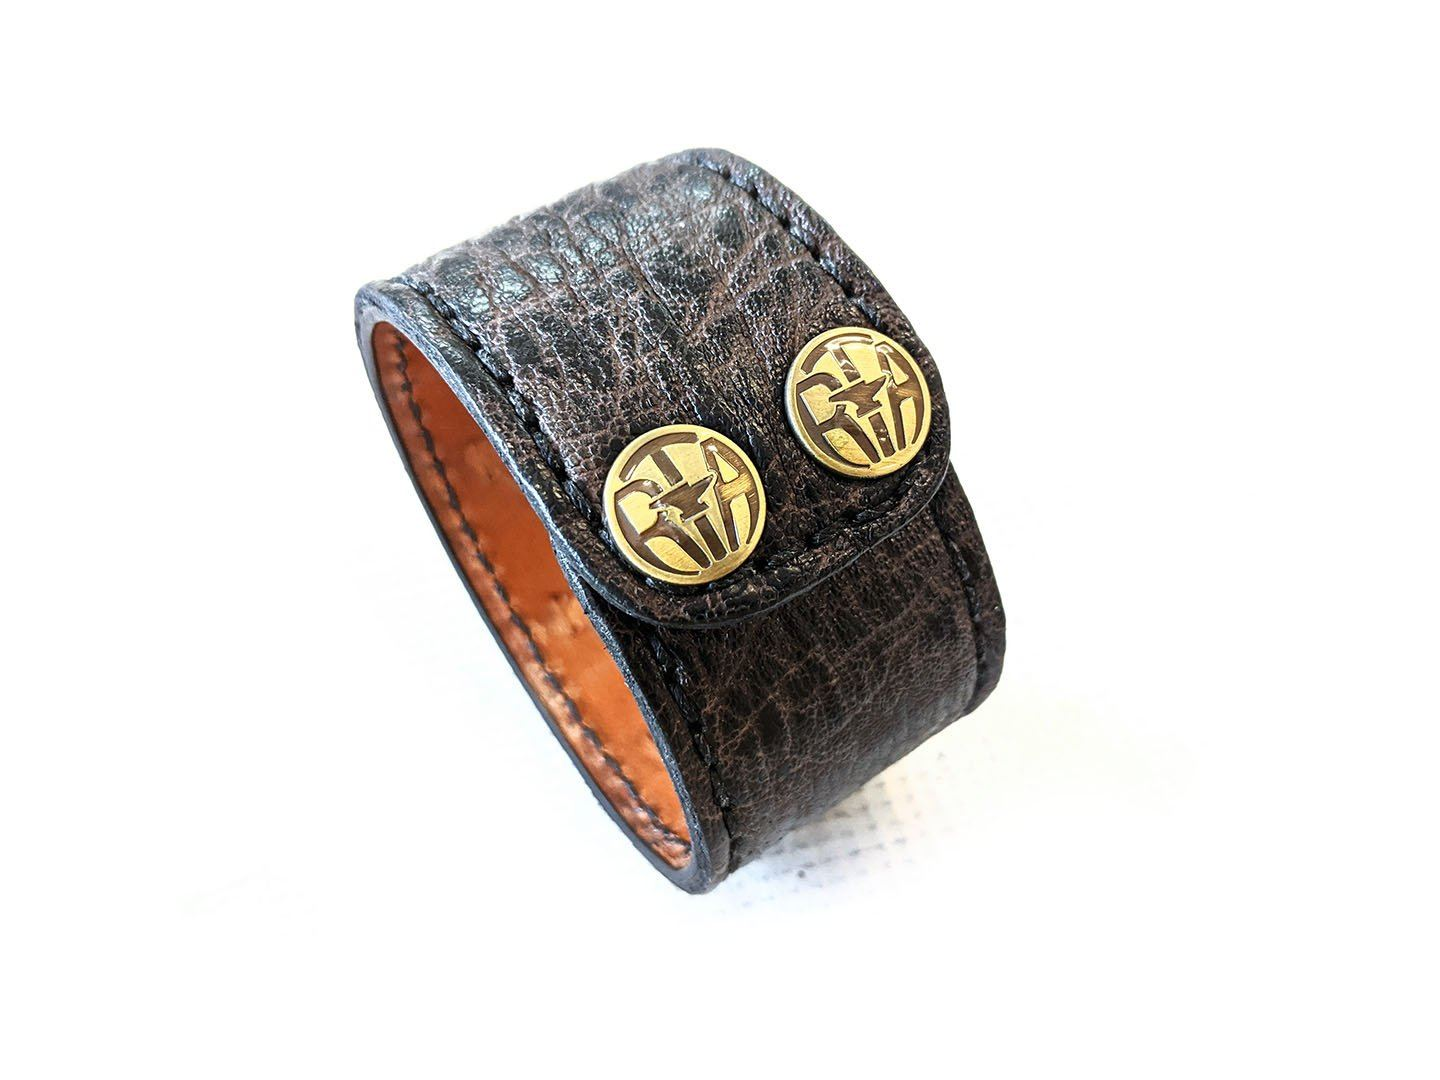 "Leather Cuff - 8.5"" Nicotine Elephant - Anvil Customs"